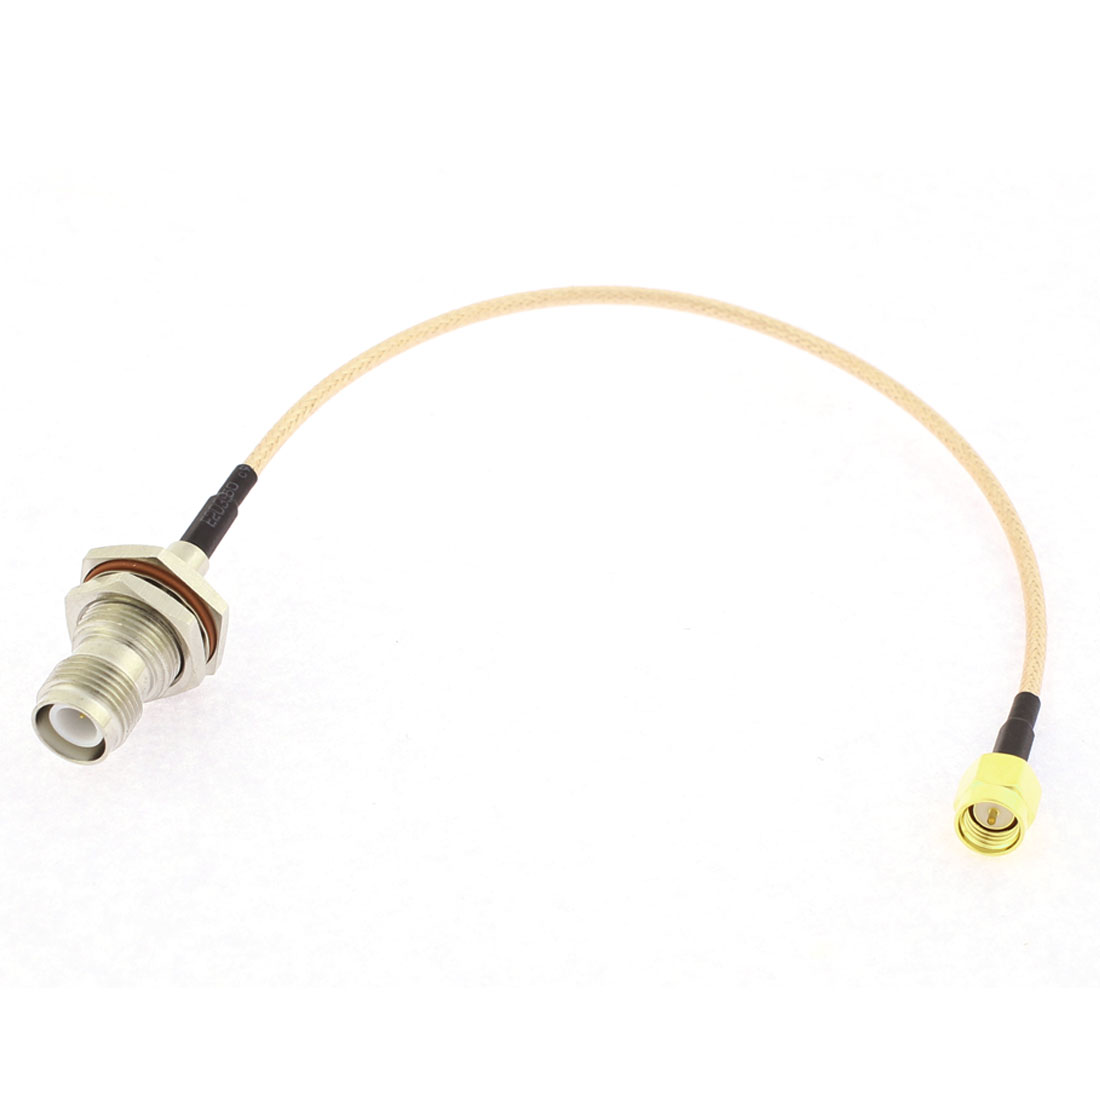 RP-TNC Female to RP-SMA Male Jack RG316 Pigtail Cable Connector